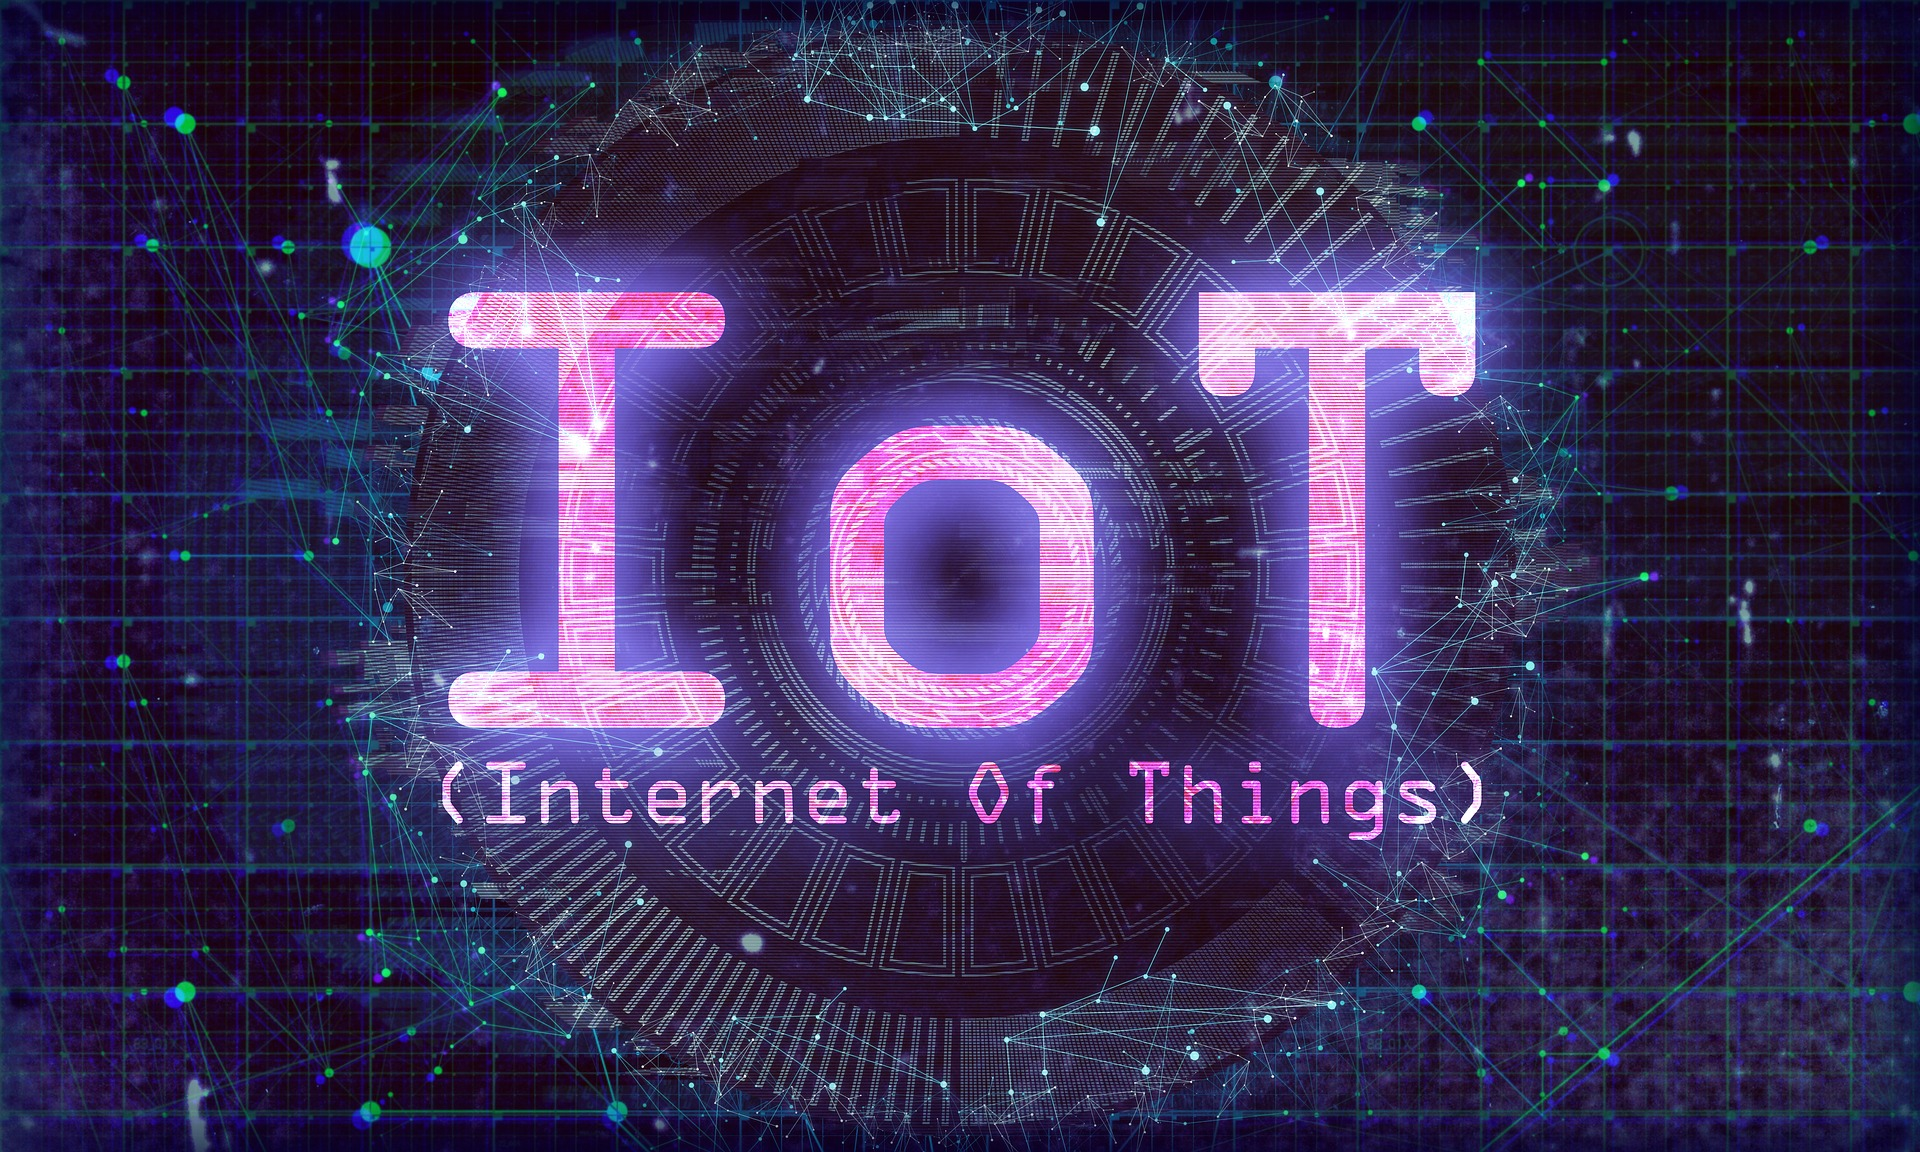 Internet Trends 2020.Internet Of Things Trends And Business Ideas To Follow In